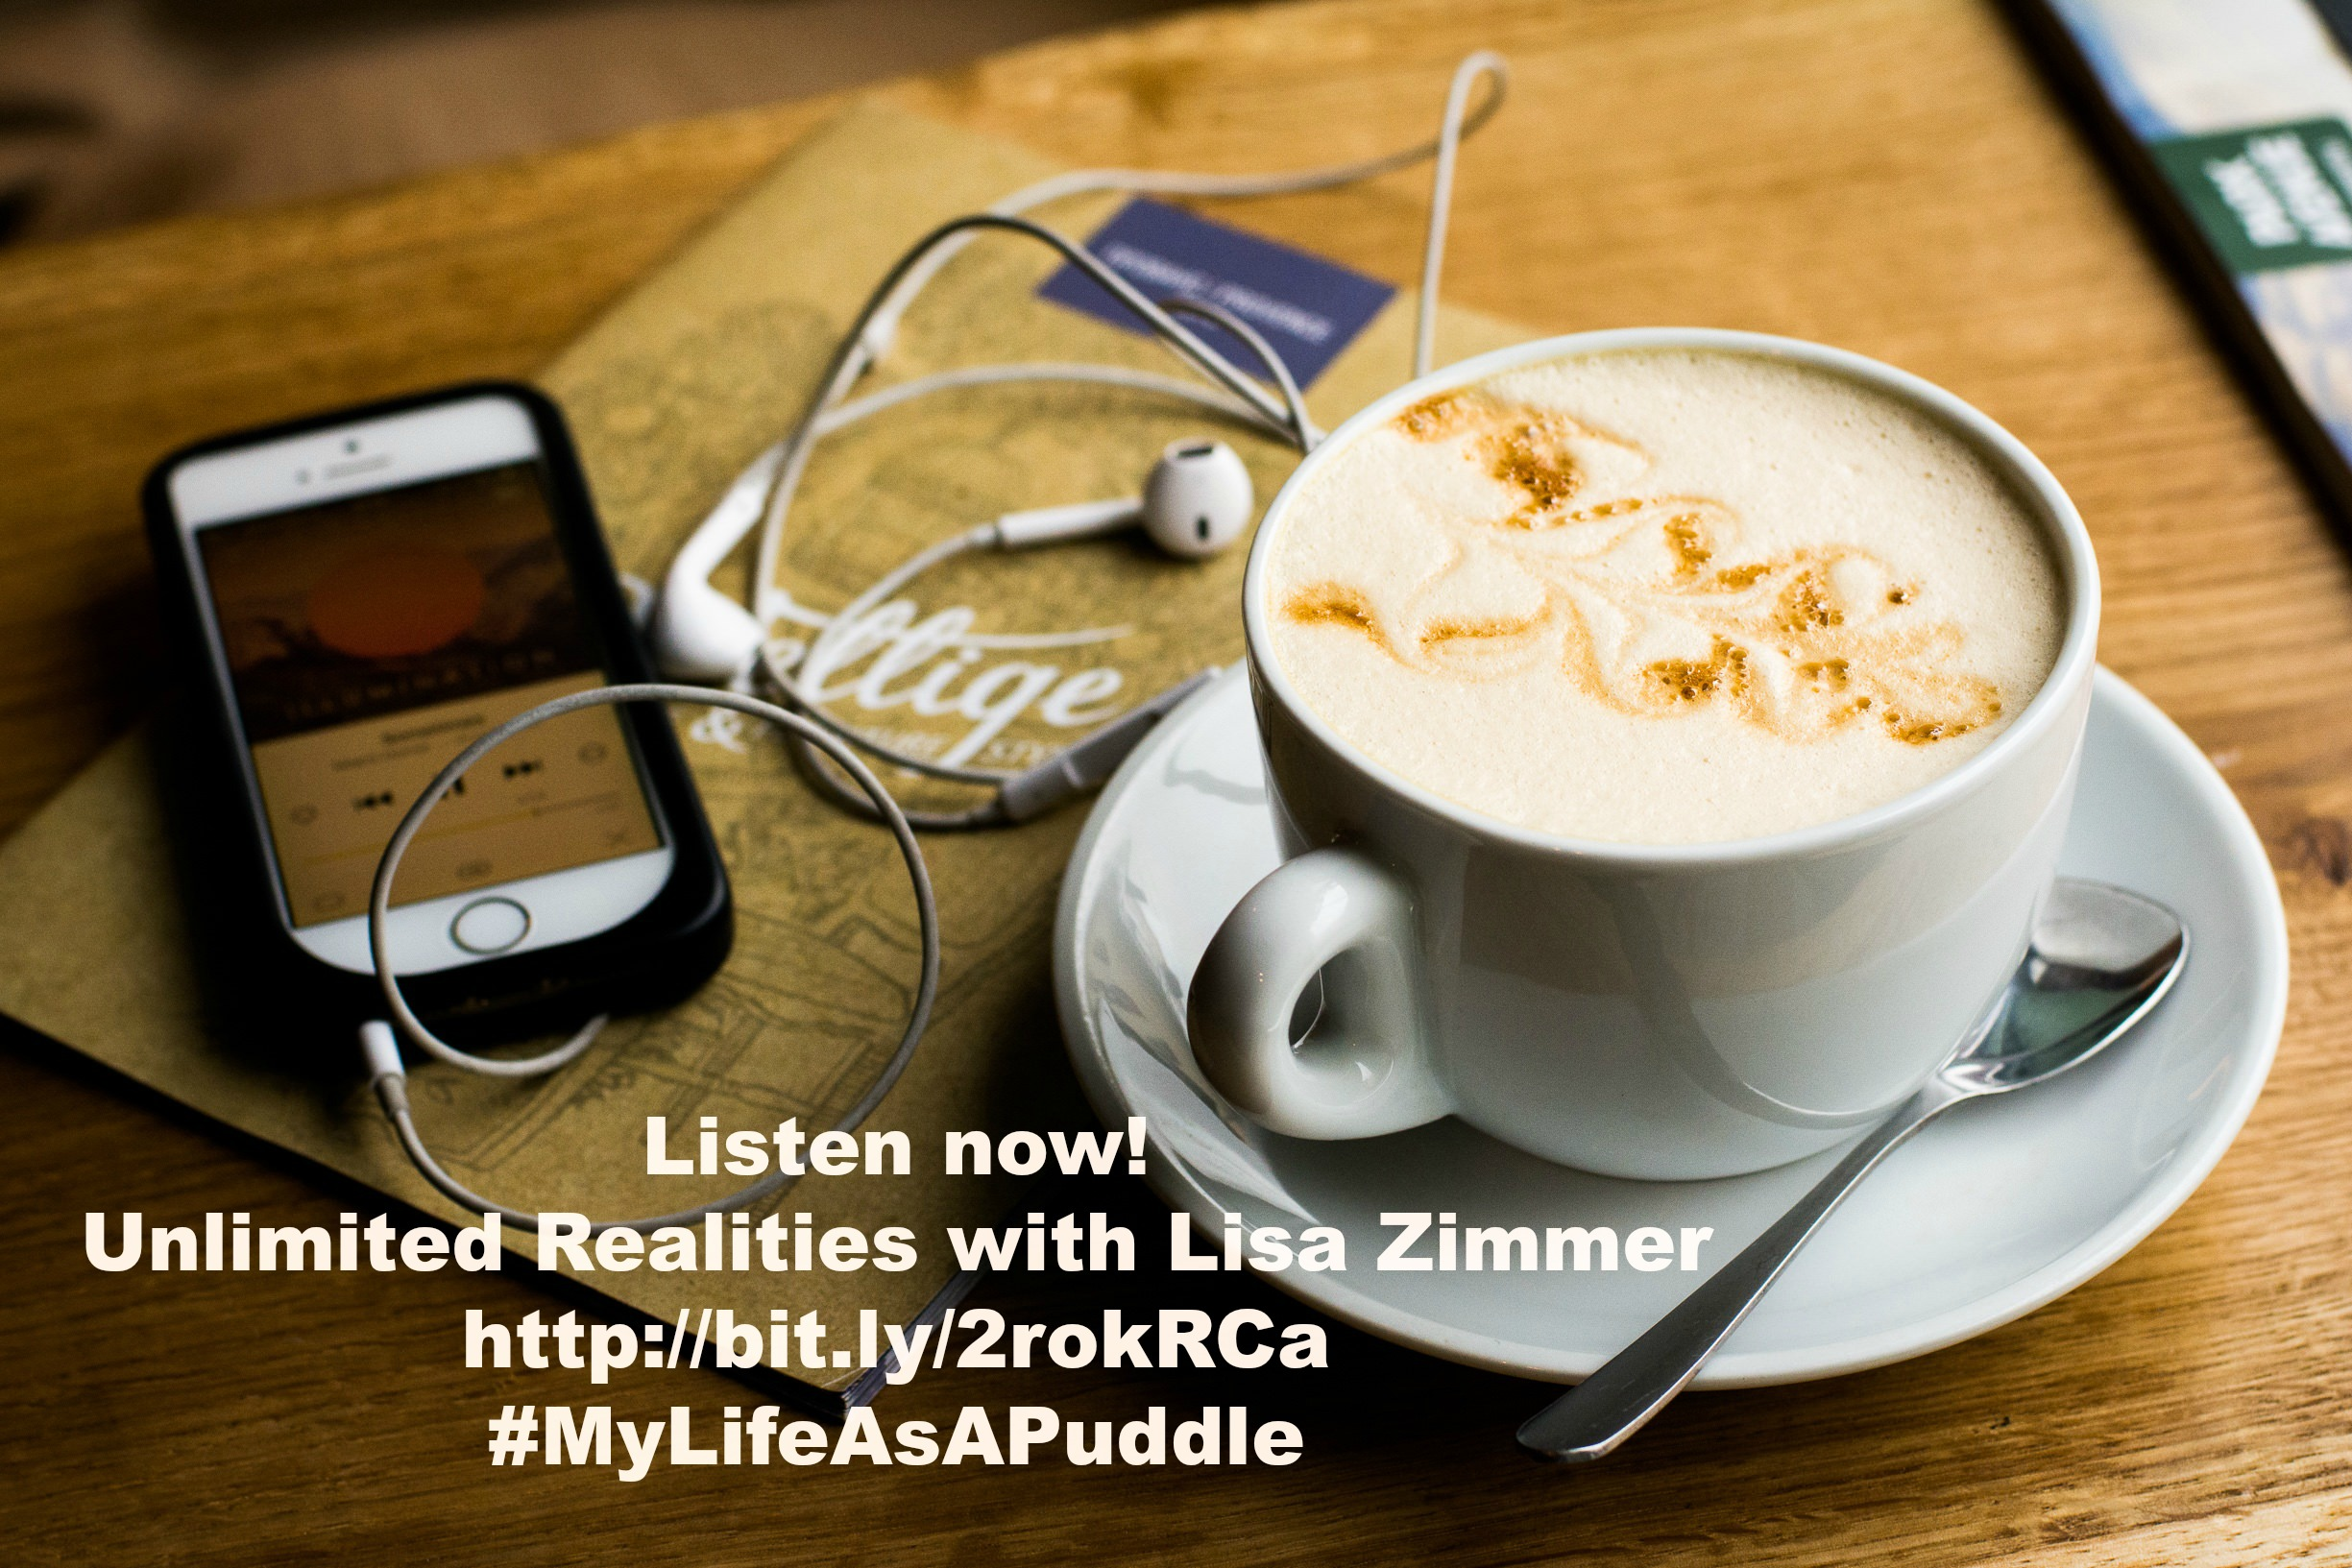 My Life as a Puddle on Unlimited Realities with Lisa Zimmer